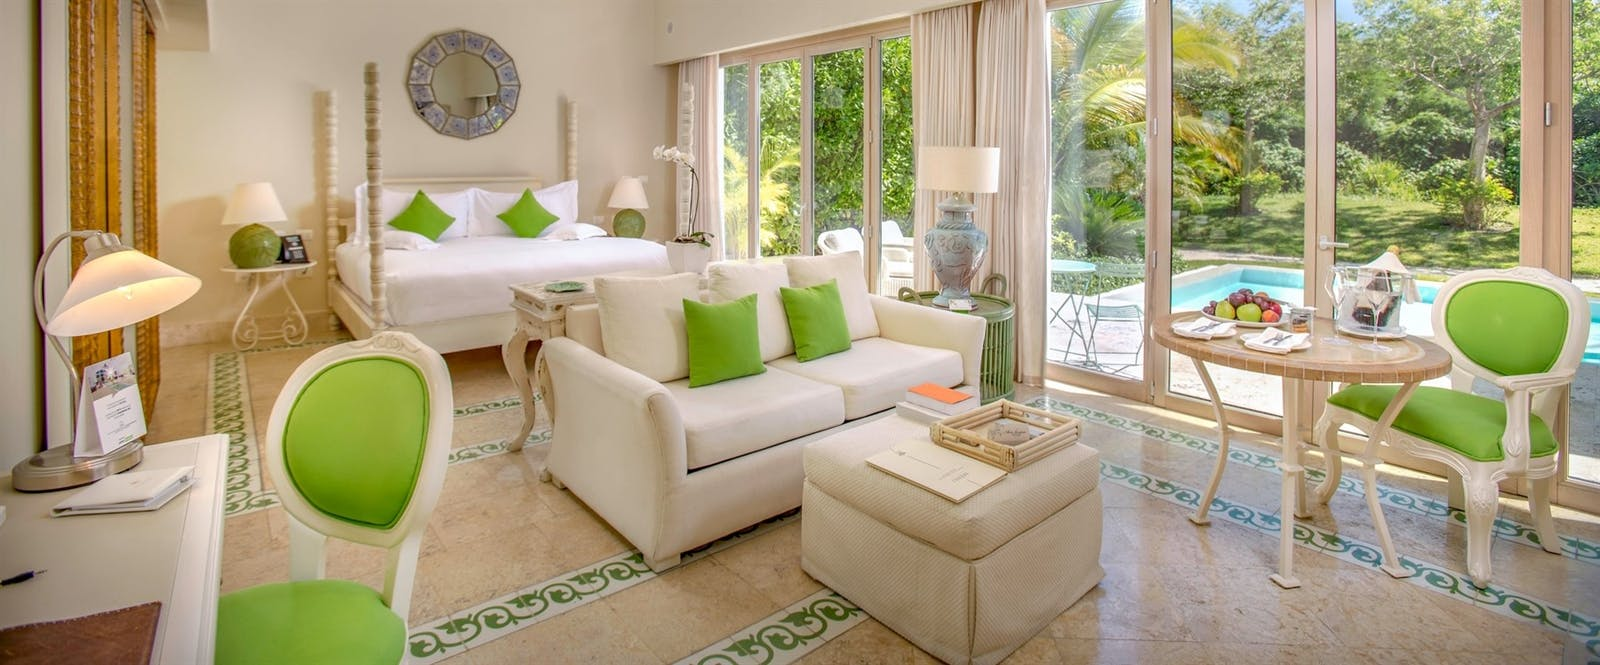 Luxury Pool Junior Suite at Eden Roc at Cap Cana Boutique Suites & Beach Club, Dominican Republic